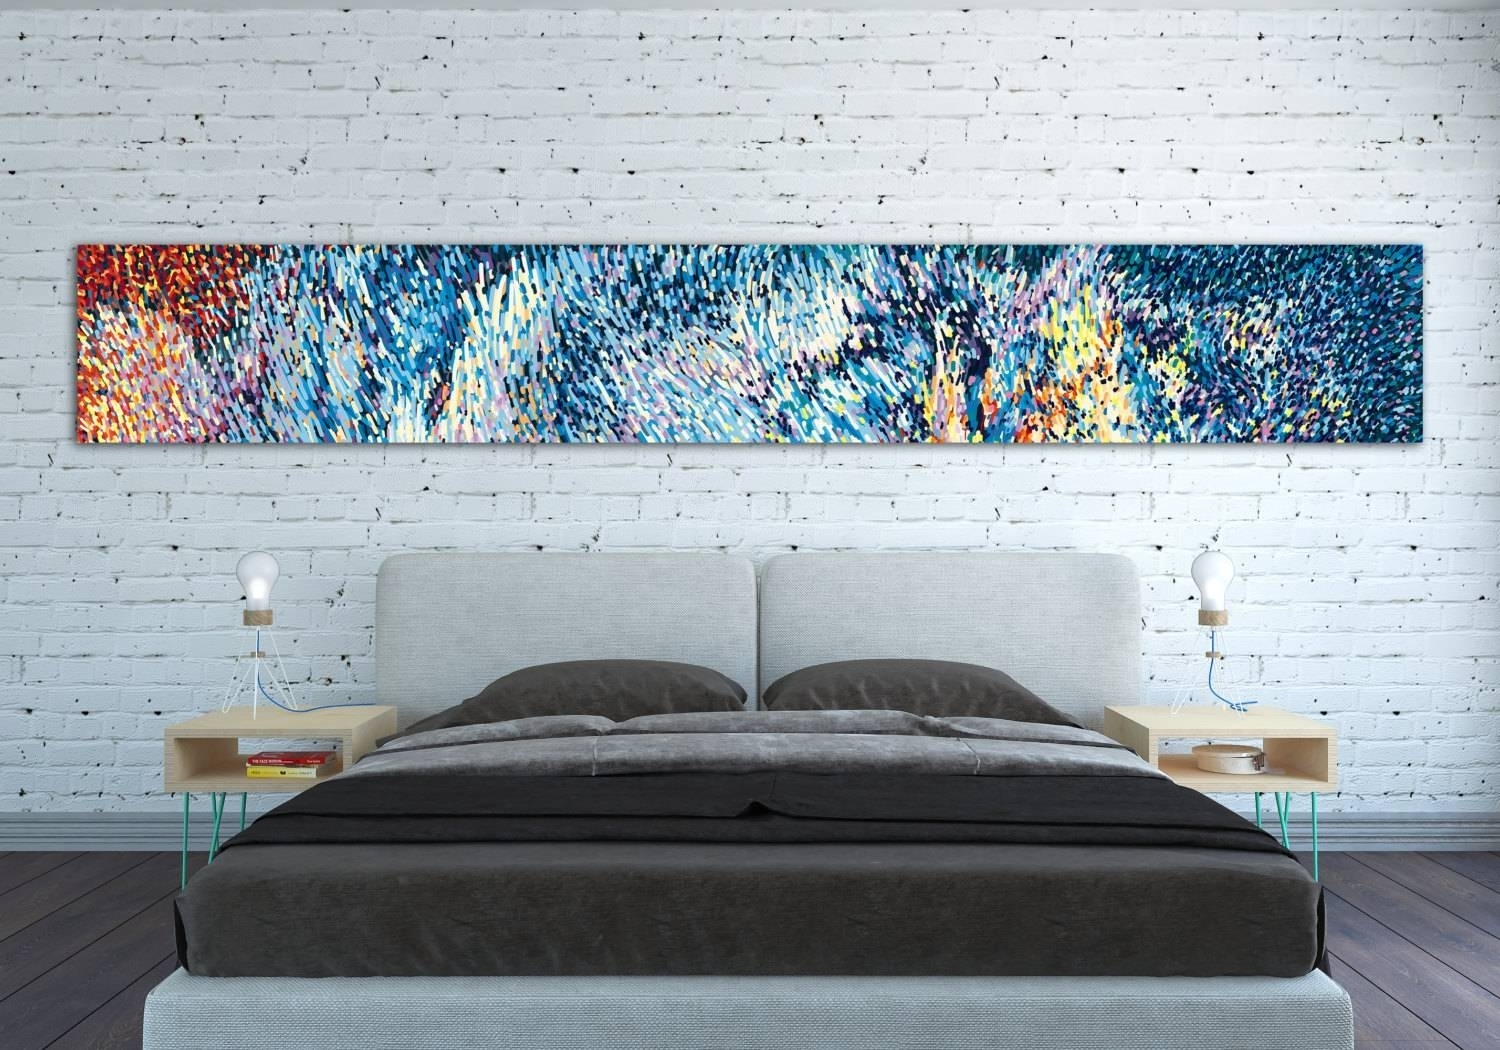 20 Best Collection Of Oversized Canvas Wall Art Pertaining To Best And Newest Abstract Oversized Canvas Wall Art (Gallery 3 of 20)